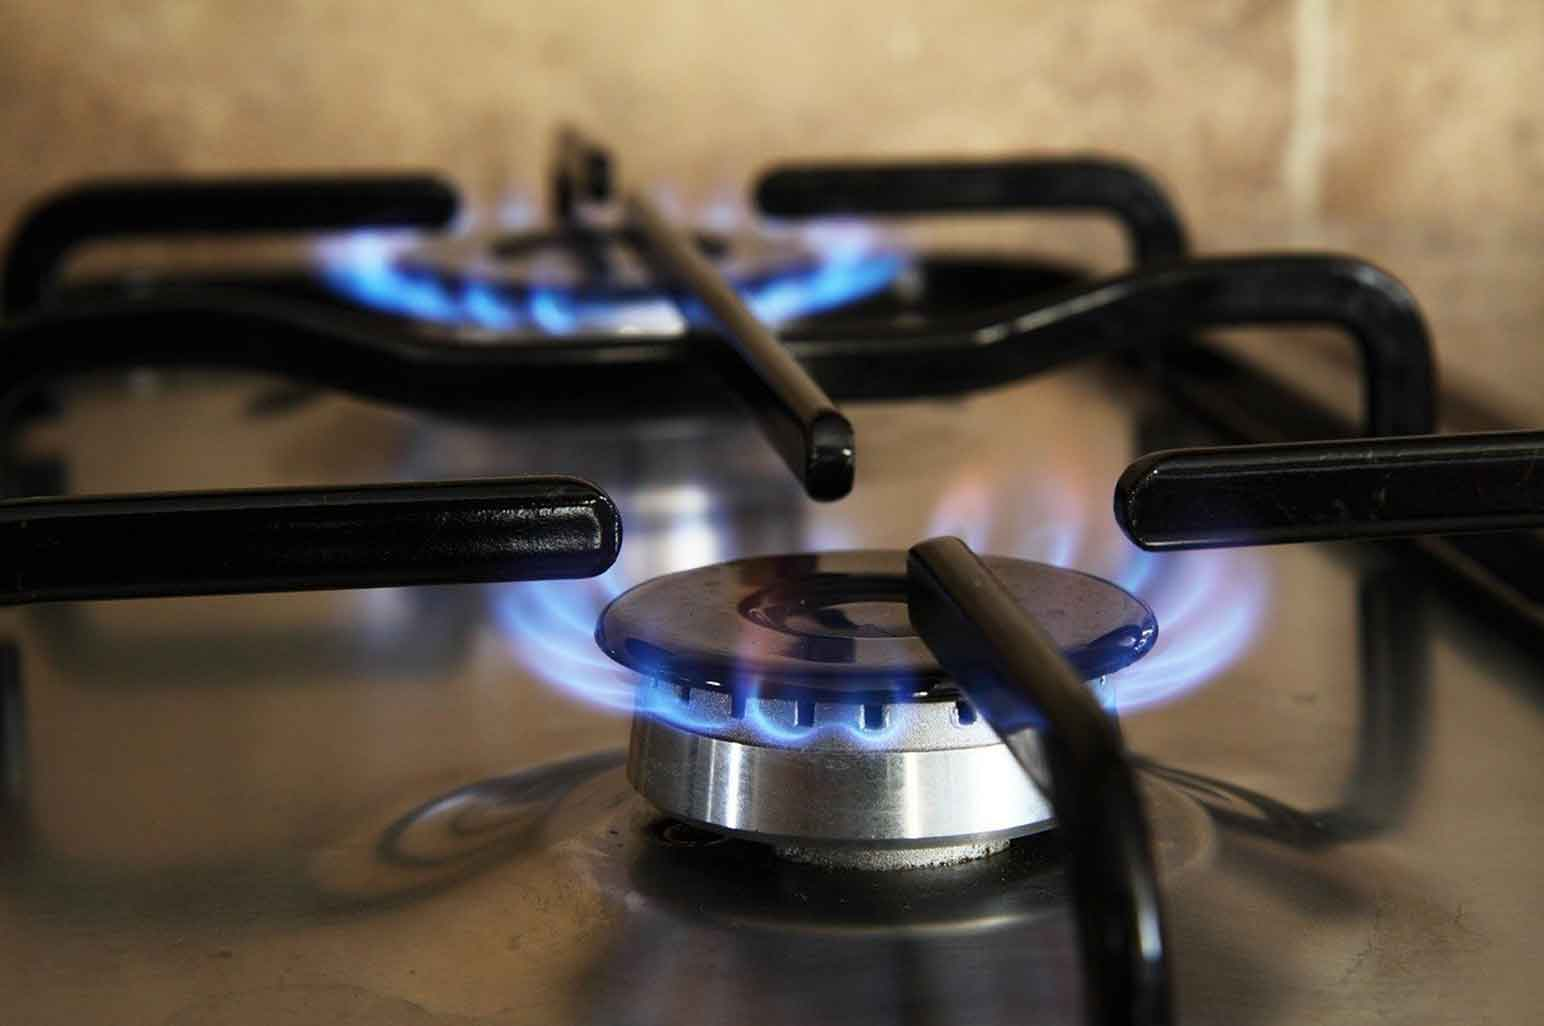 Are You Aware Of These Hidden Fire Hazards In Your Home?